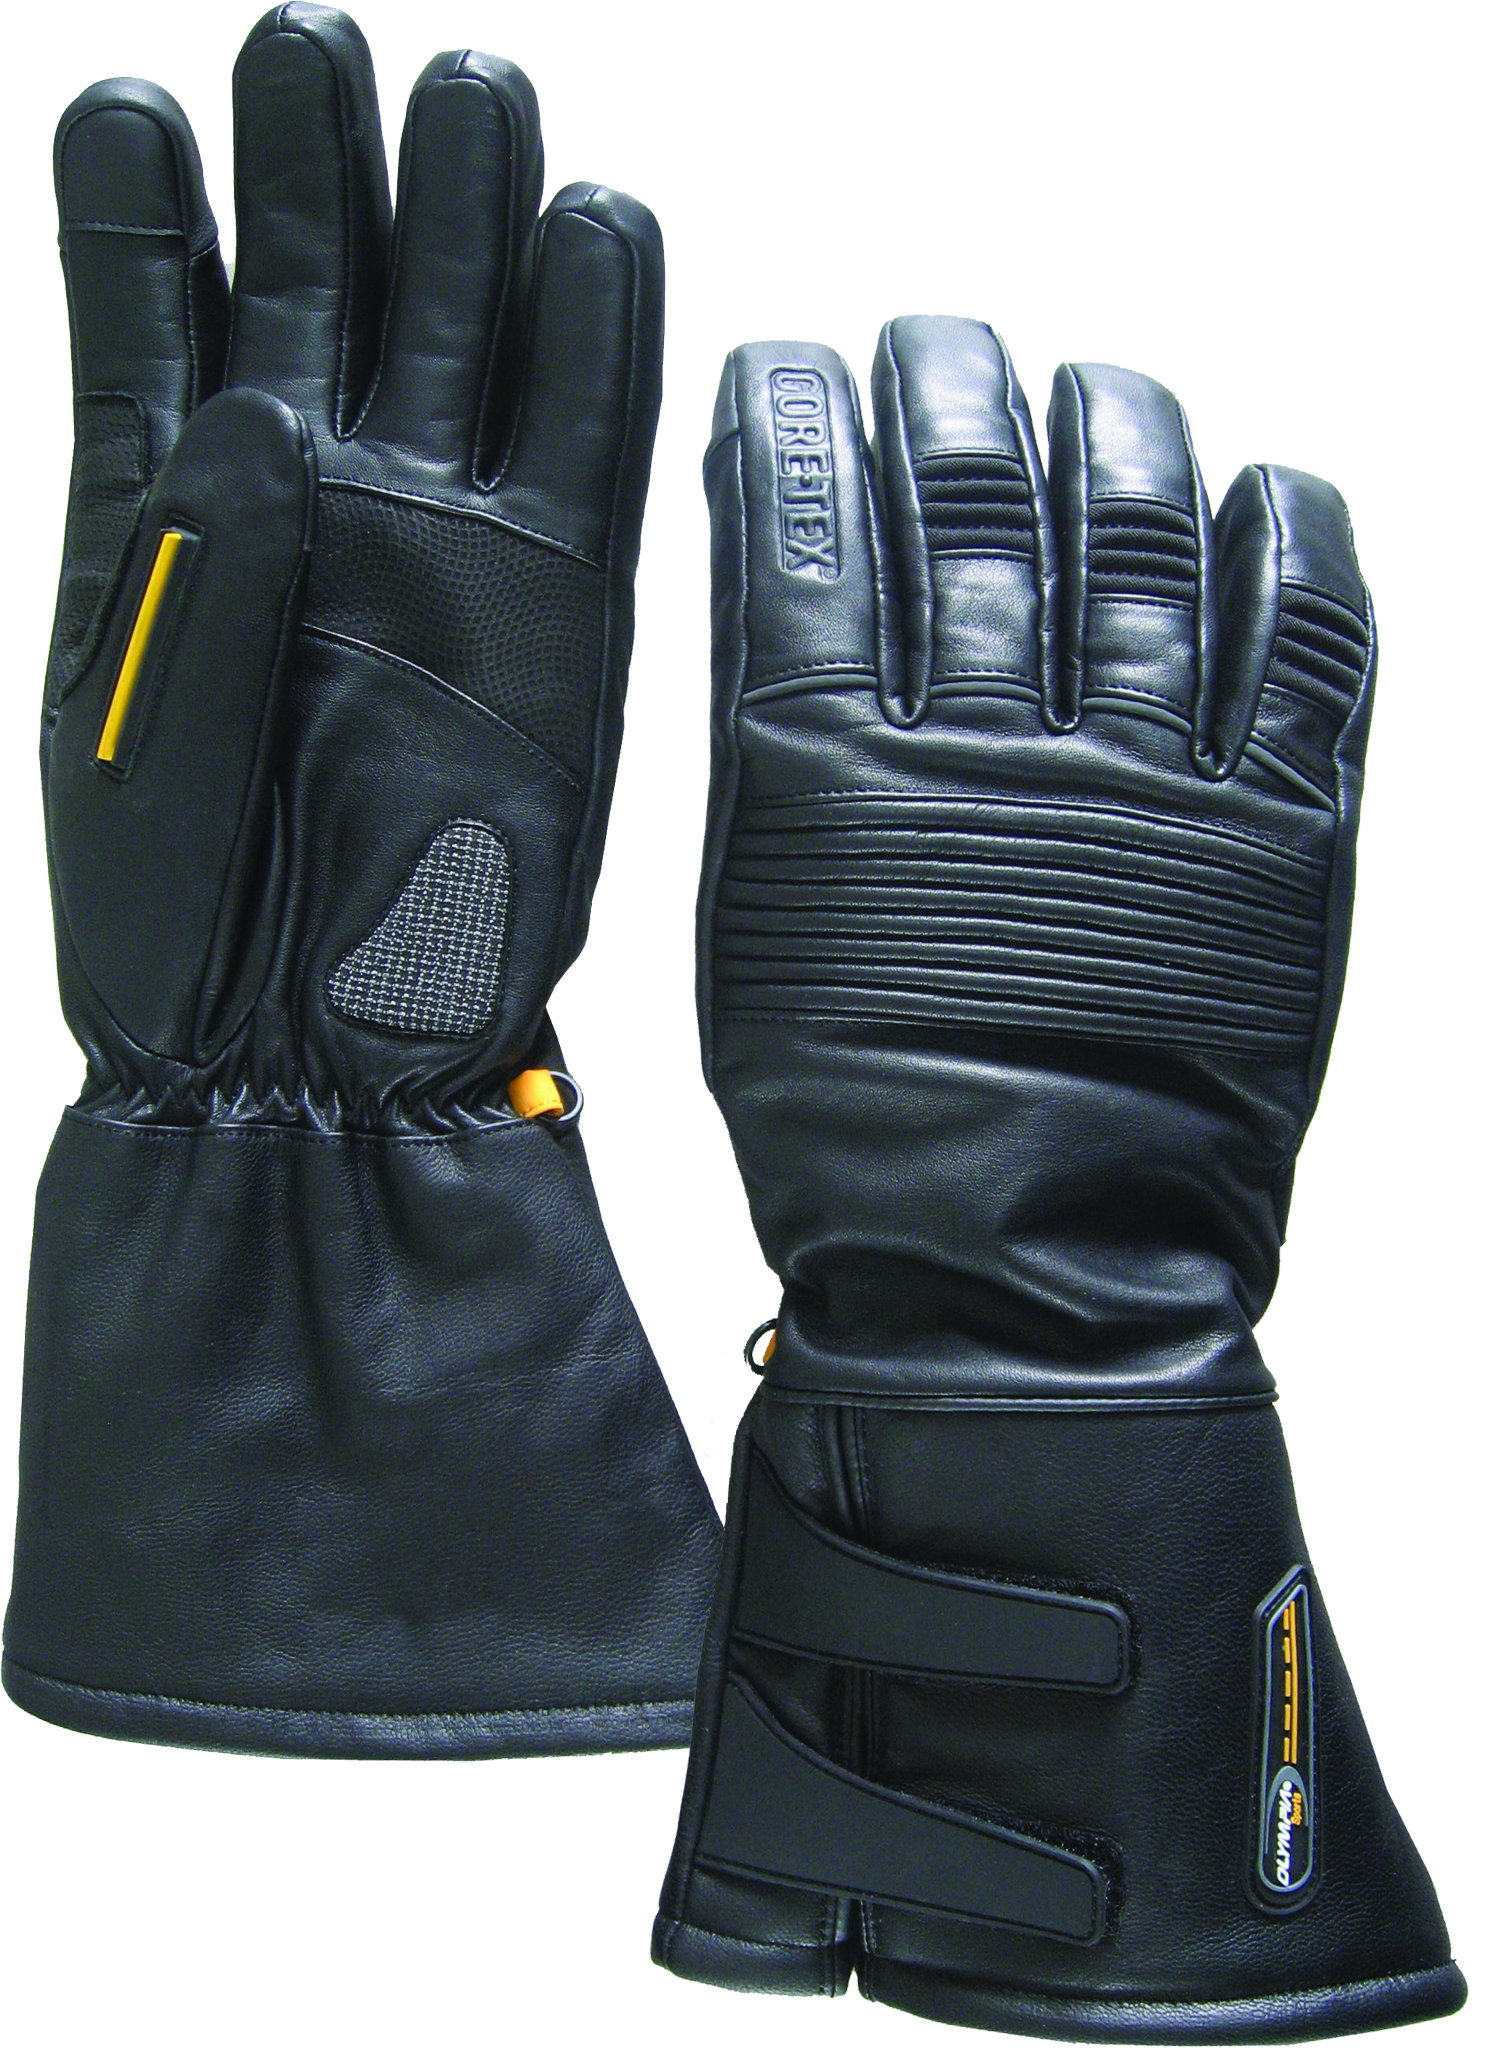 New Olympia WeatherKing Touch Motorcycle Glove 4102-PalmBack